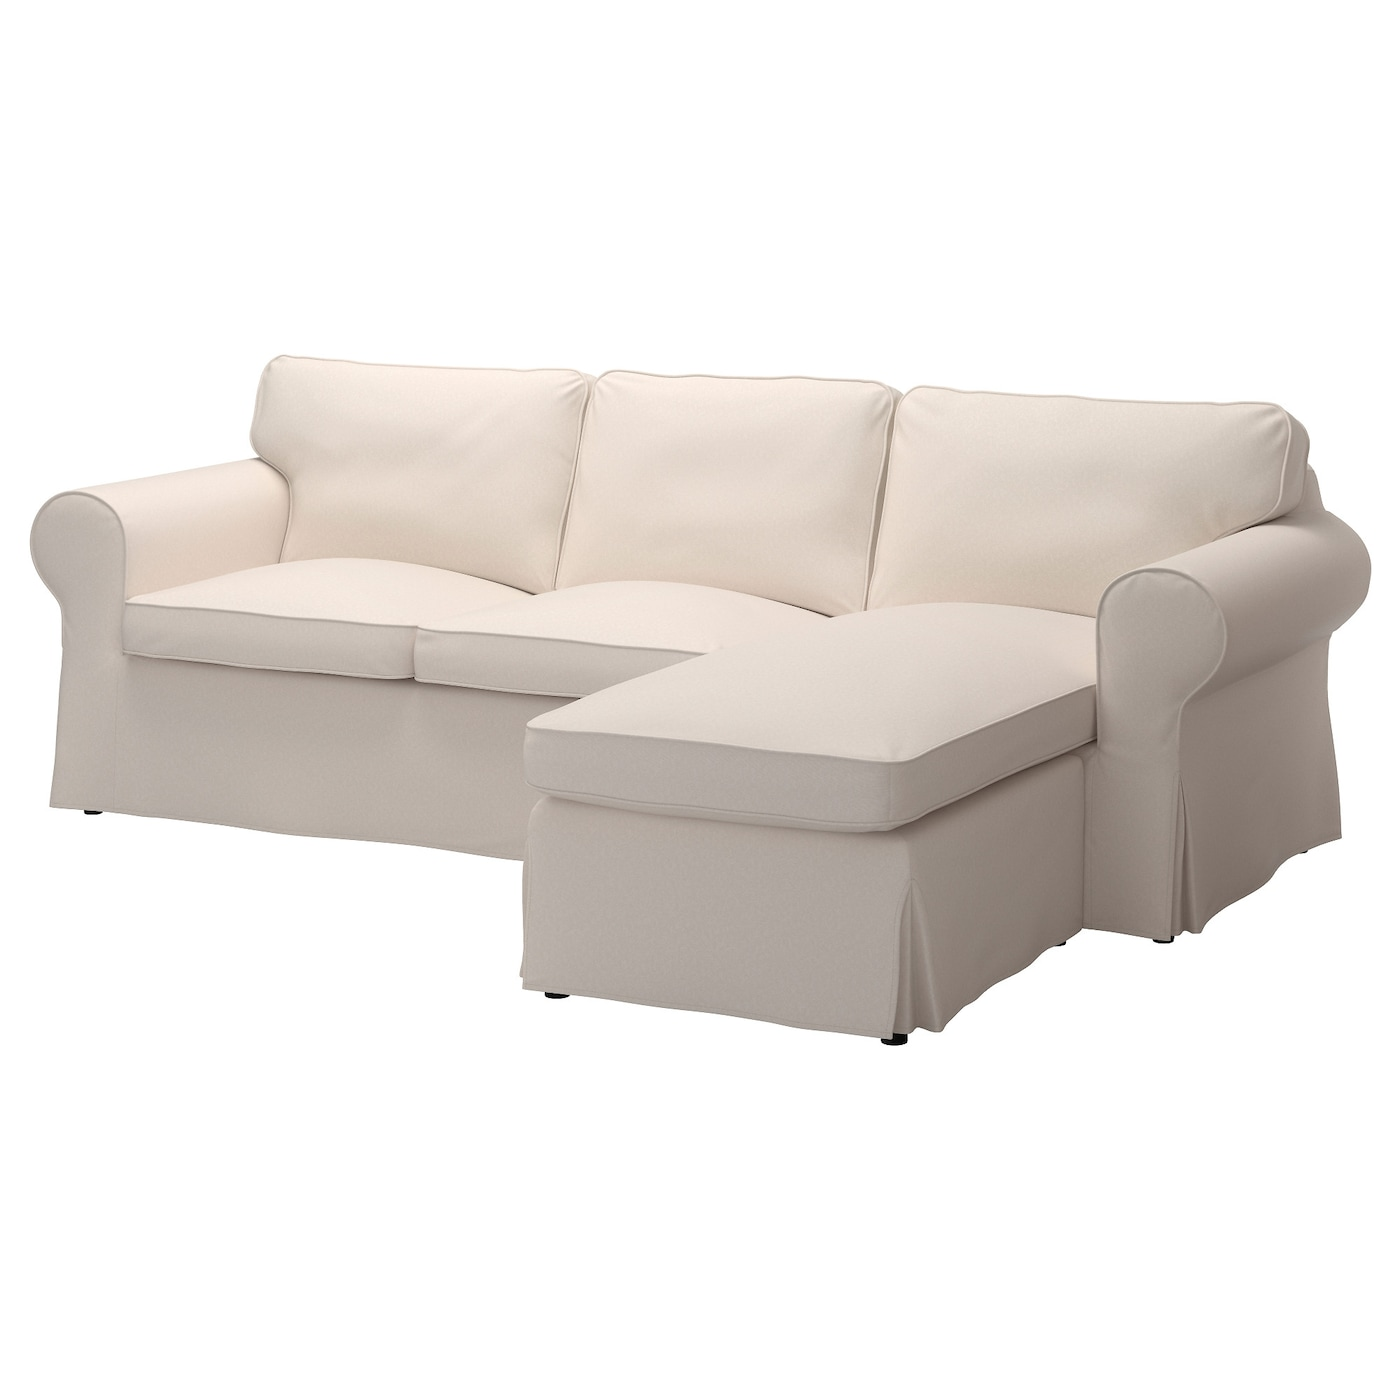 Ektorp two seat sofa and chaise longue lofallet beige ikea for Sofas con shenlong